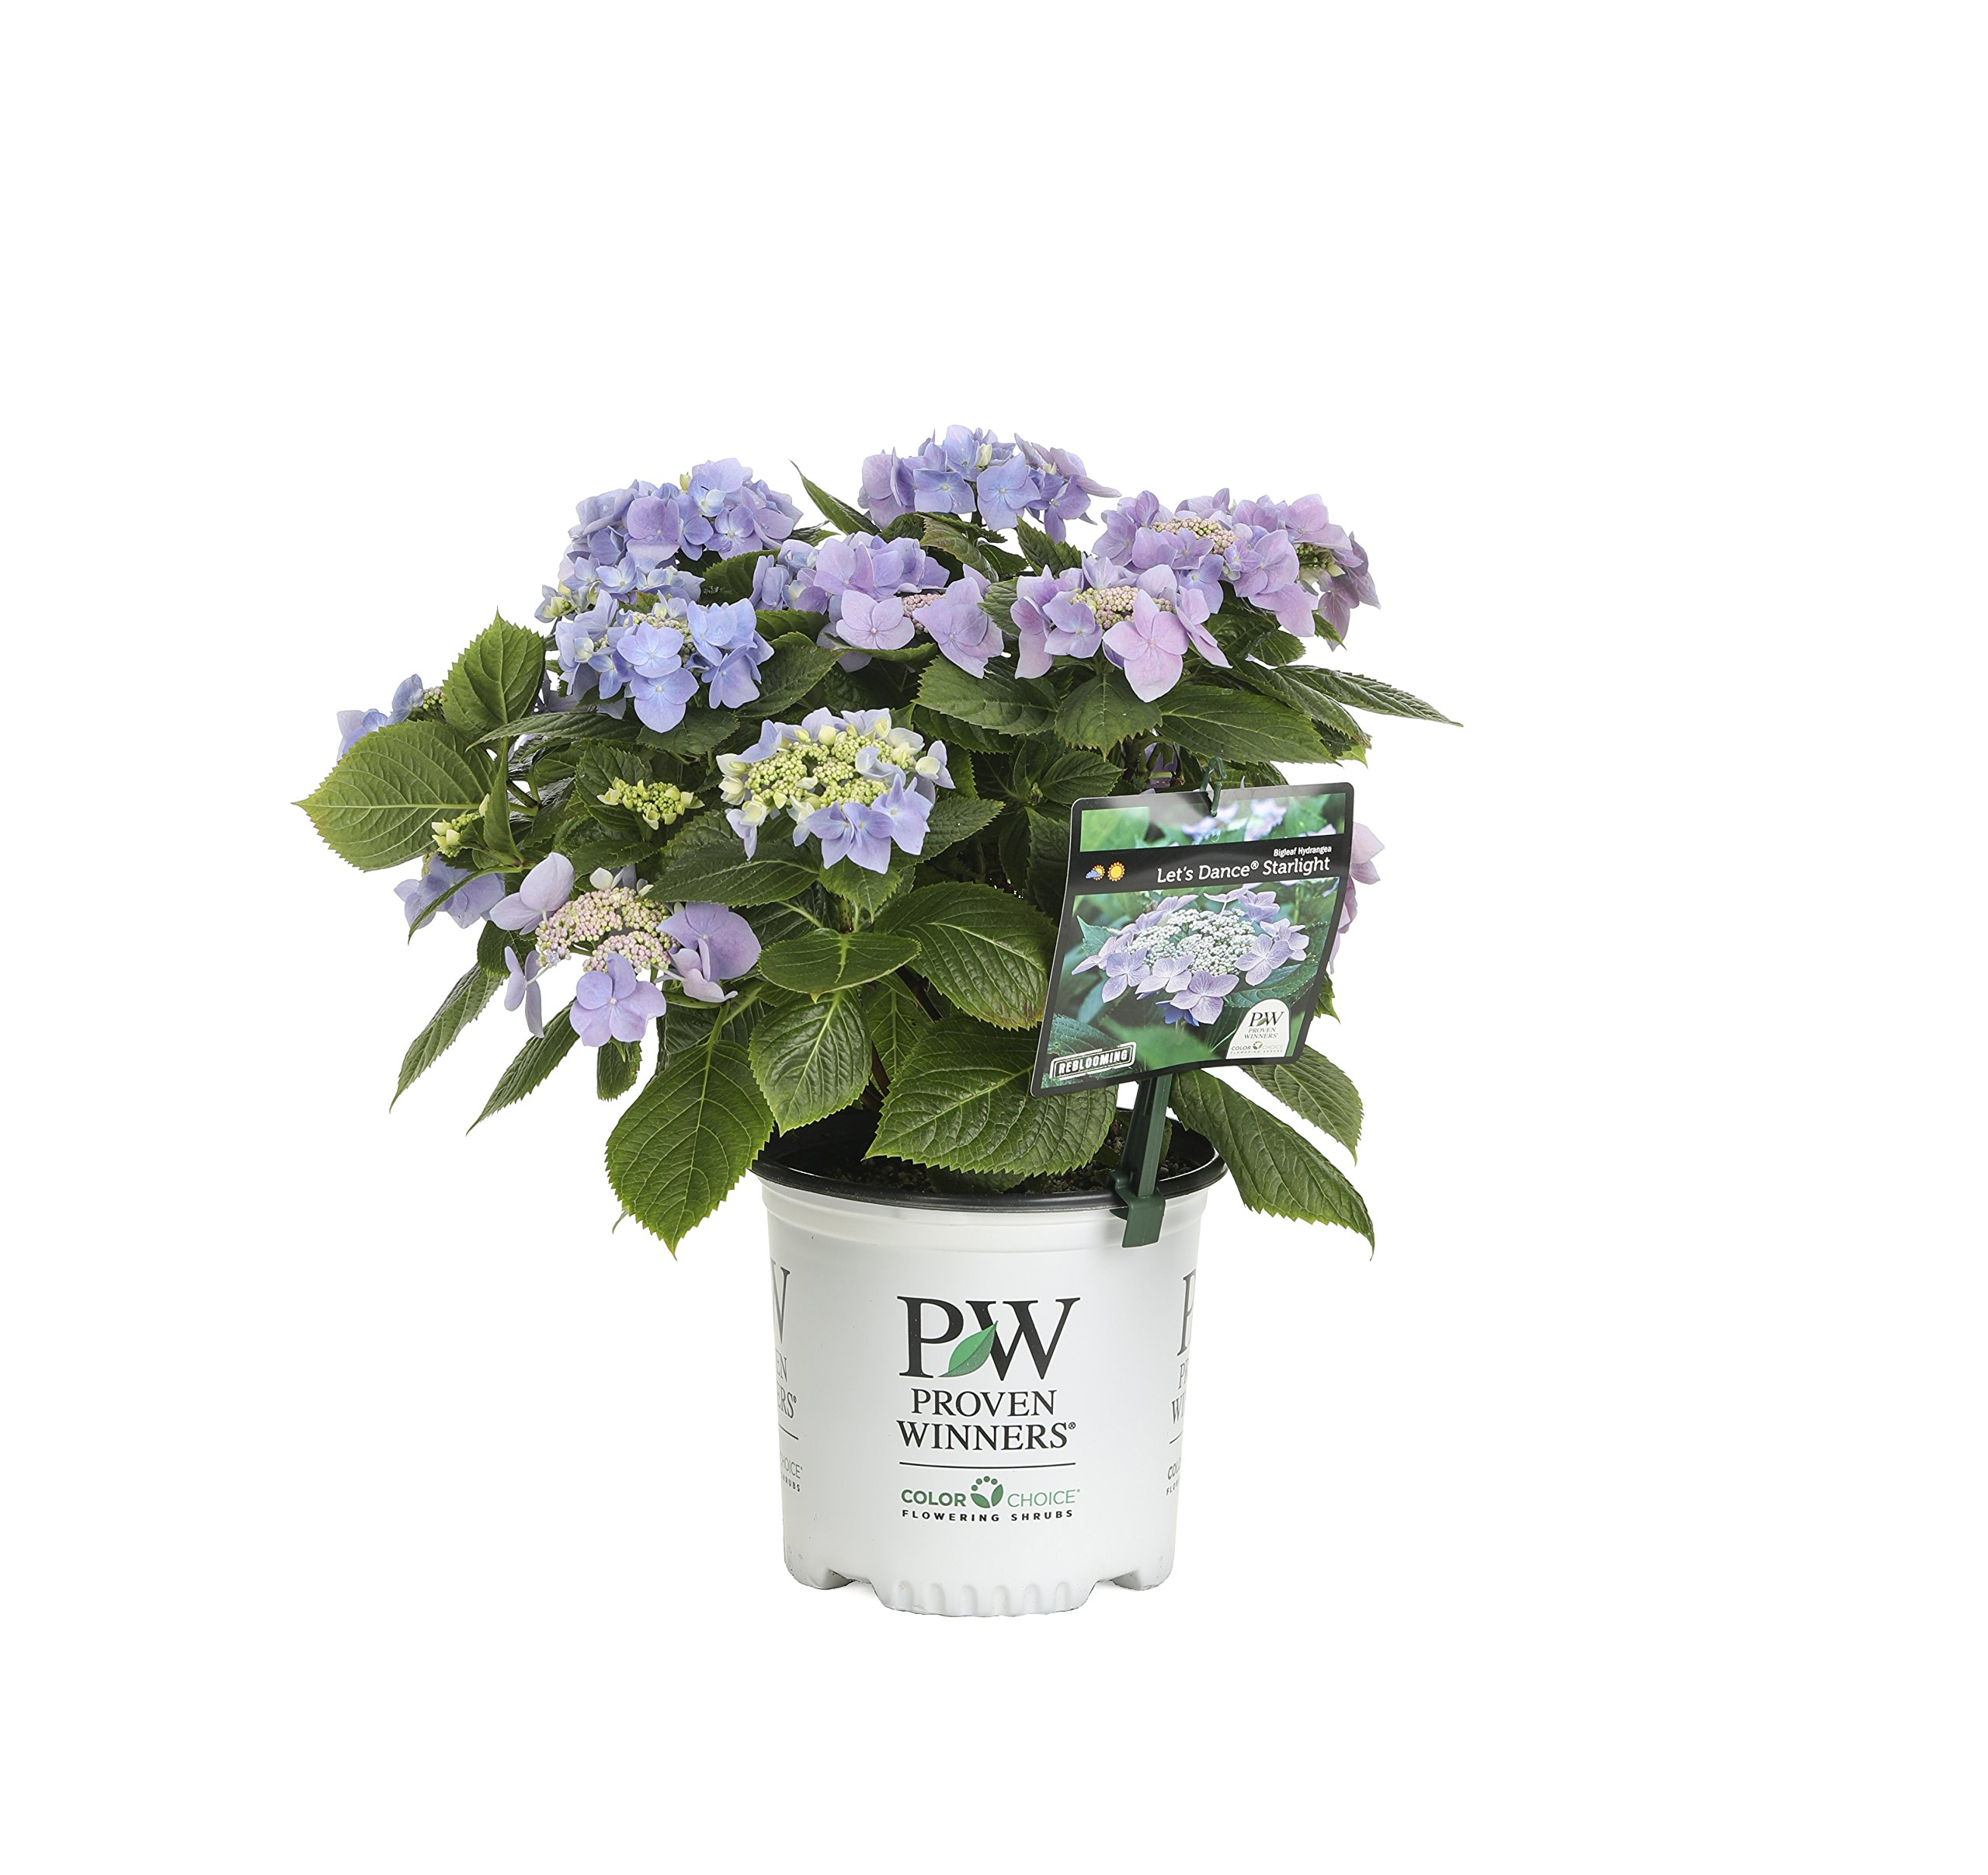 1 Gal. Let's Dance Starlight Bigleaf Hydrangea (Macrophylla) Live Shrub, Blue or Pink Flowers by Proven Winners (Image #1)